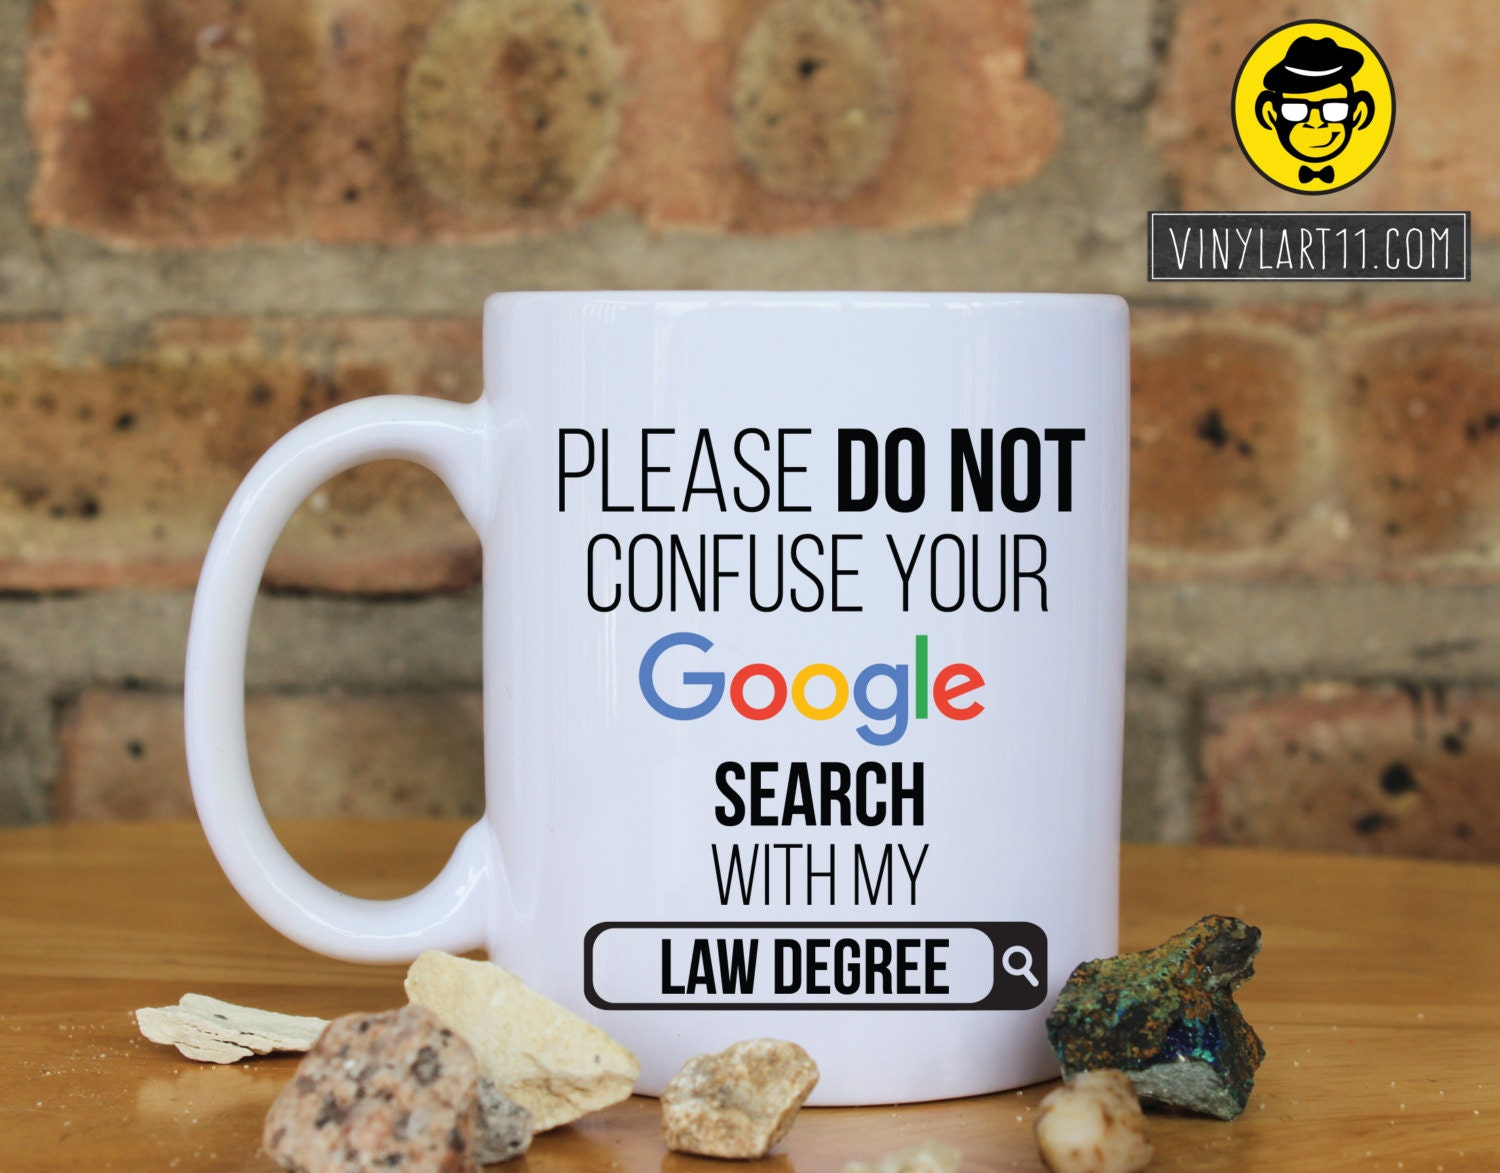 Law-Please do not confuse your Google search with my Law